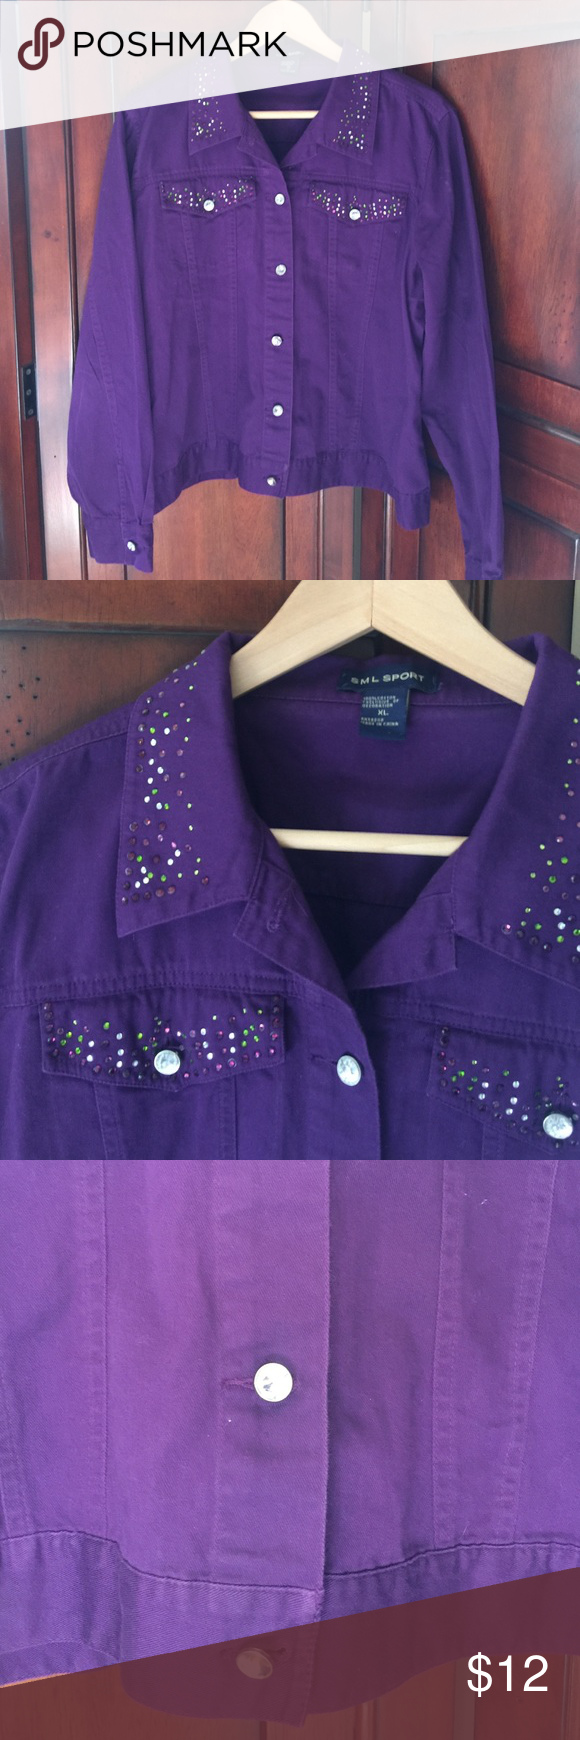 Rich Purple Rhinestone Jacket Add some sass to jeans and a tee! This lightweight 100% cotton jacket is the perfect thing to layer. Bottom button has lost its stone, but still shines. See picture. Otherwise great condition. sml sport Jackets & Coats Jean Jackets